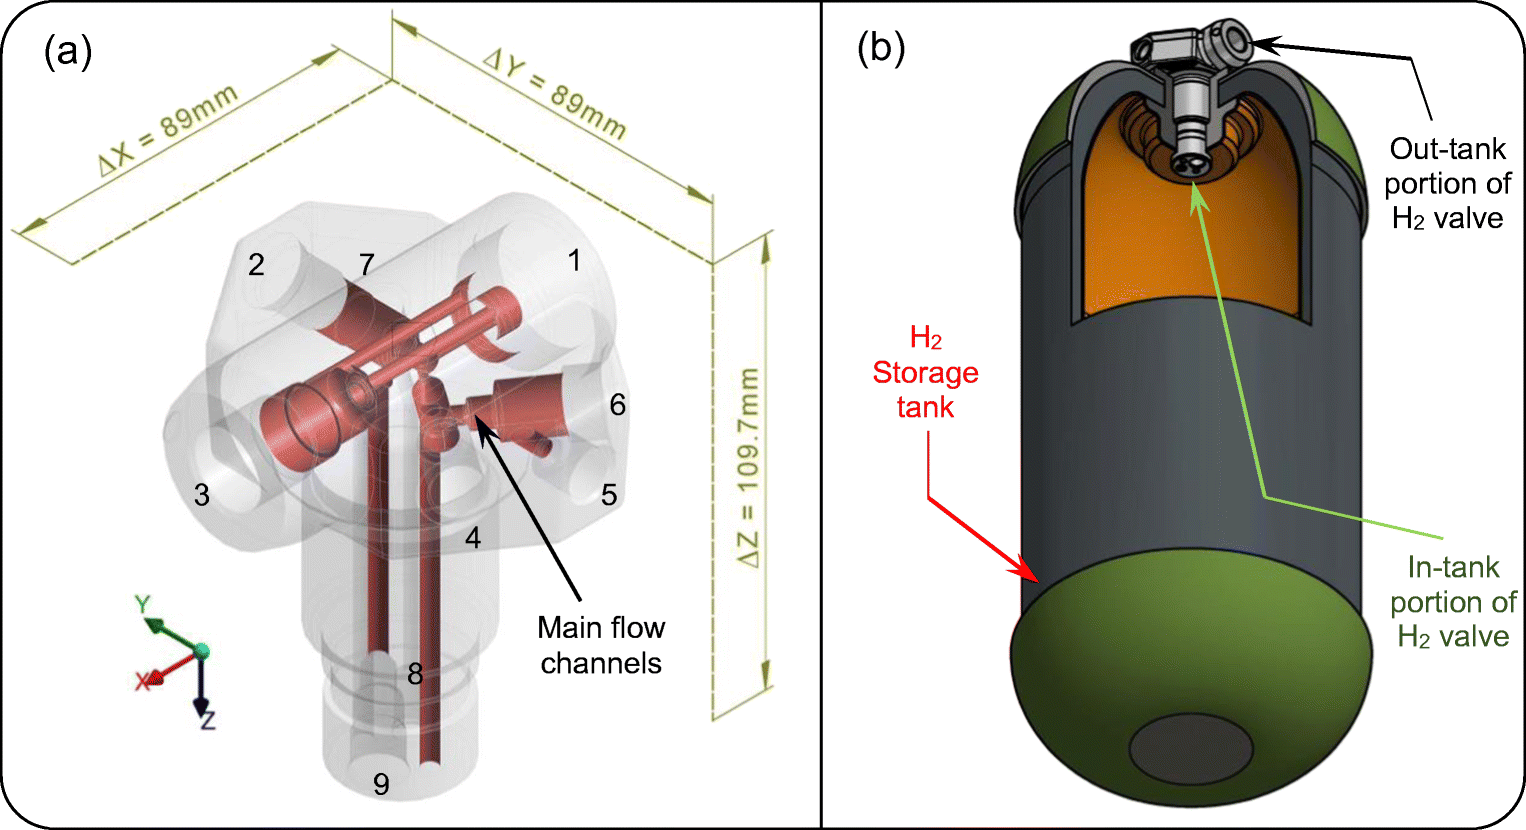 Innovative designs of an in-tank hydrogen valve towards